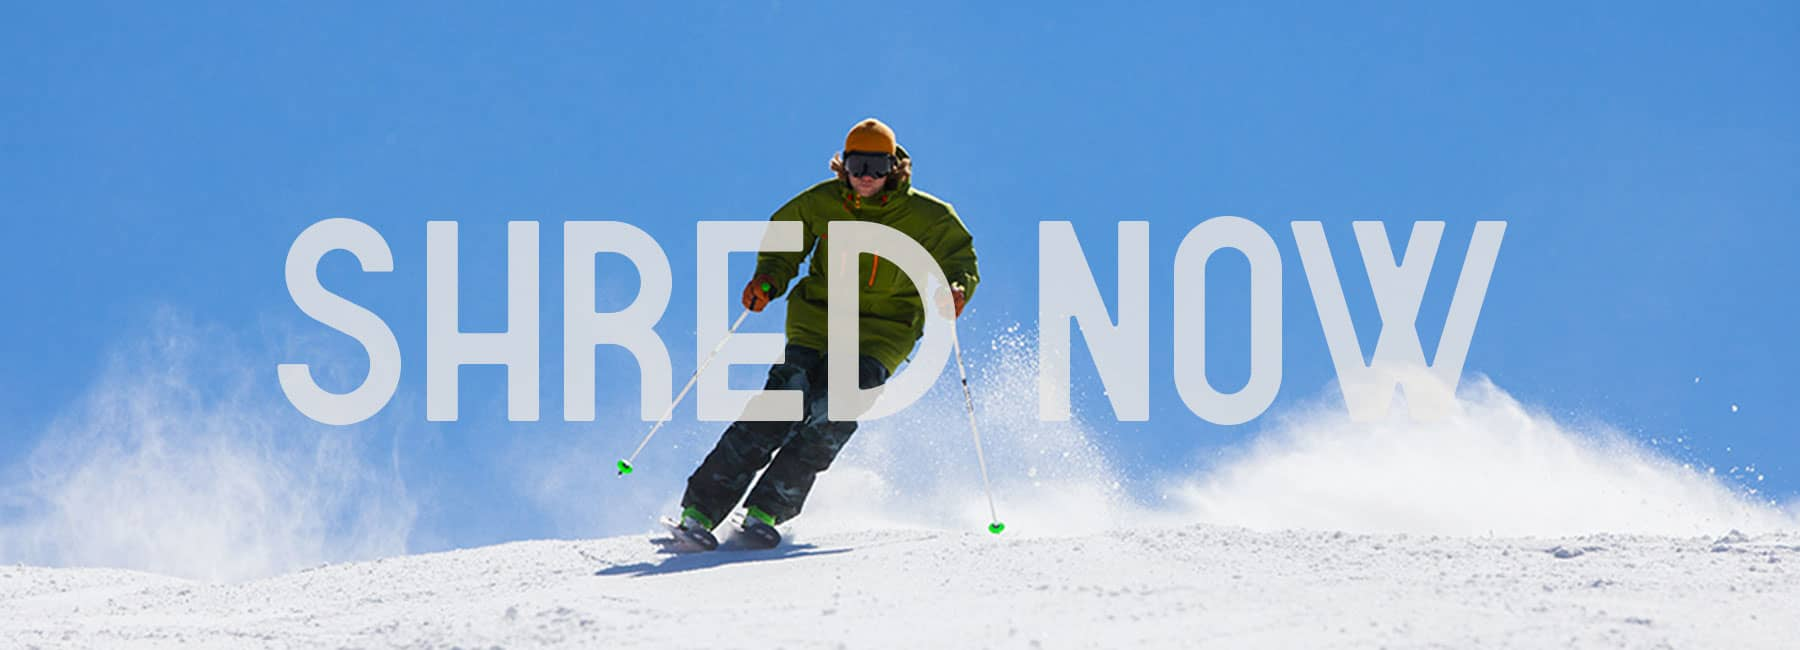 Shred Now Image of Snowboarder